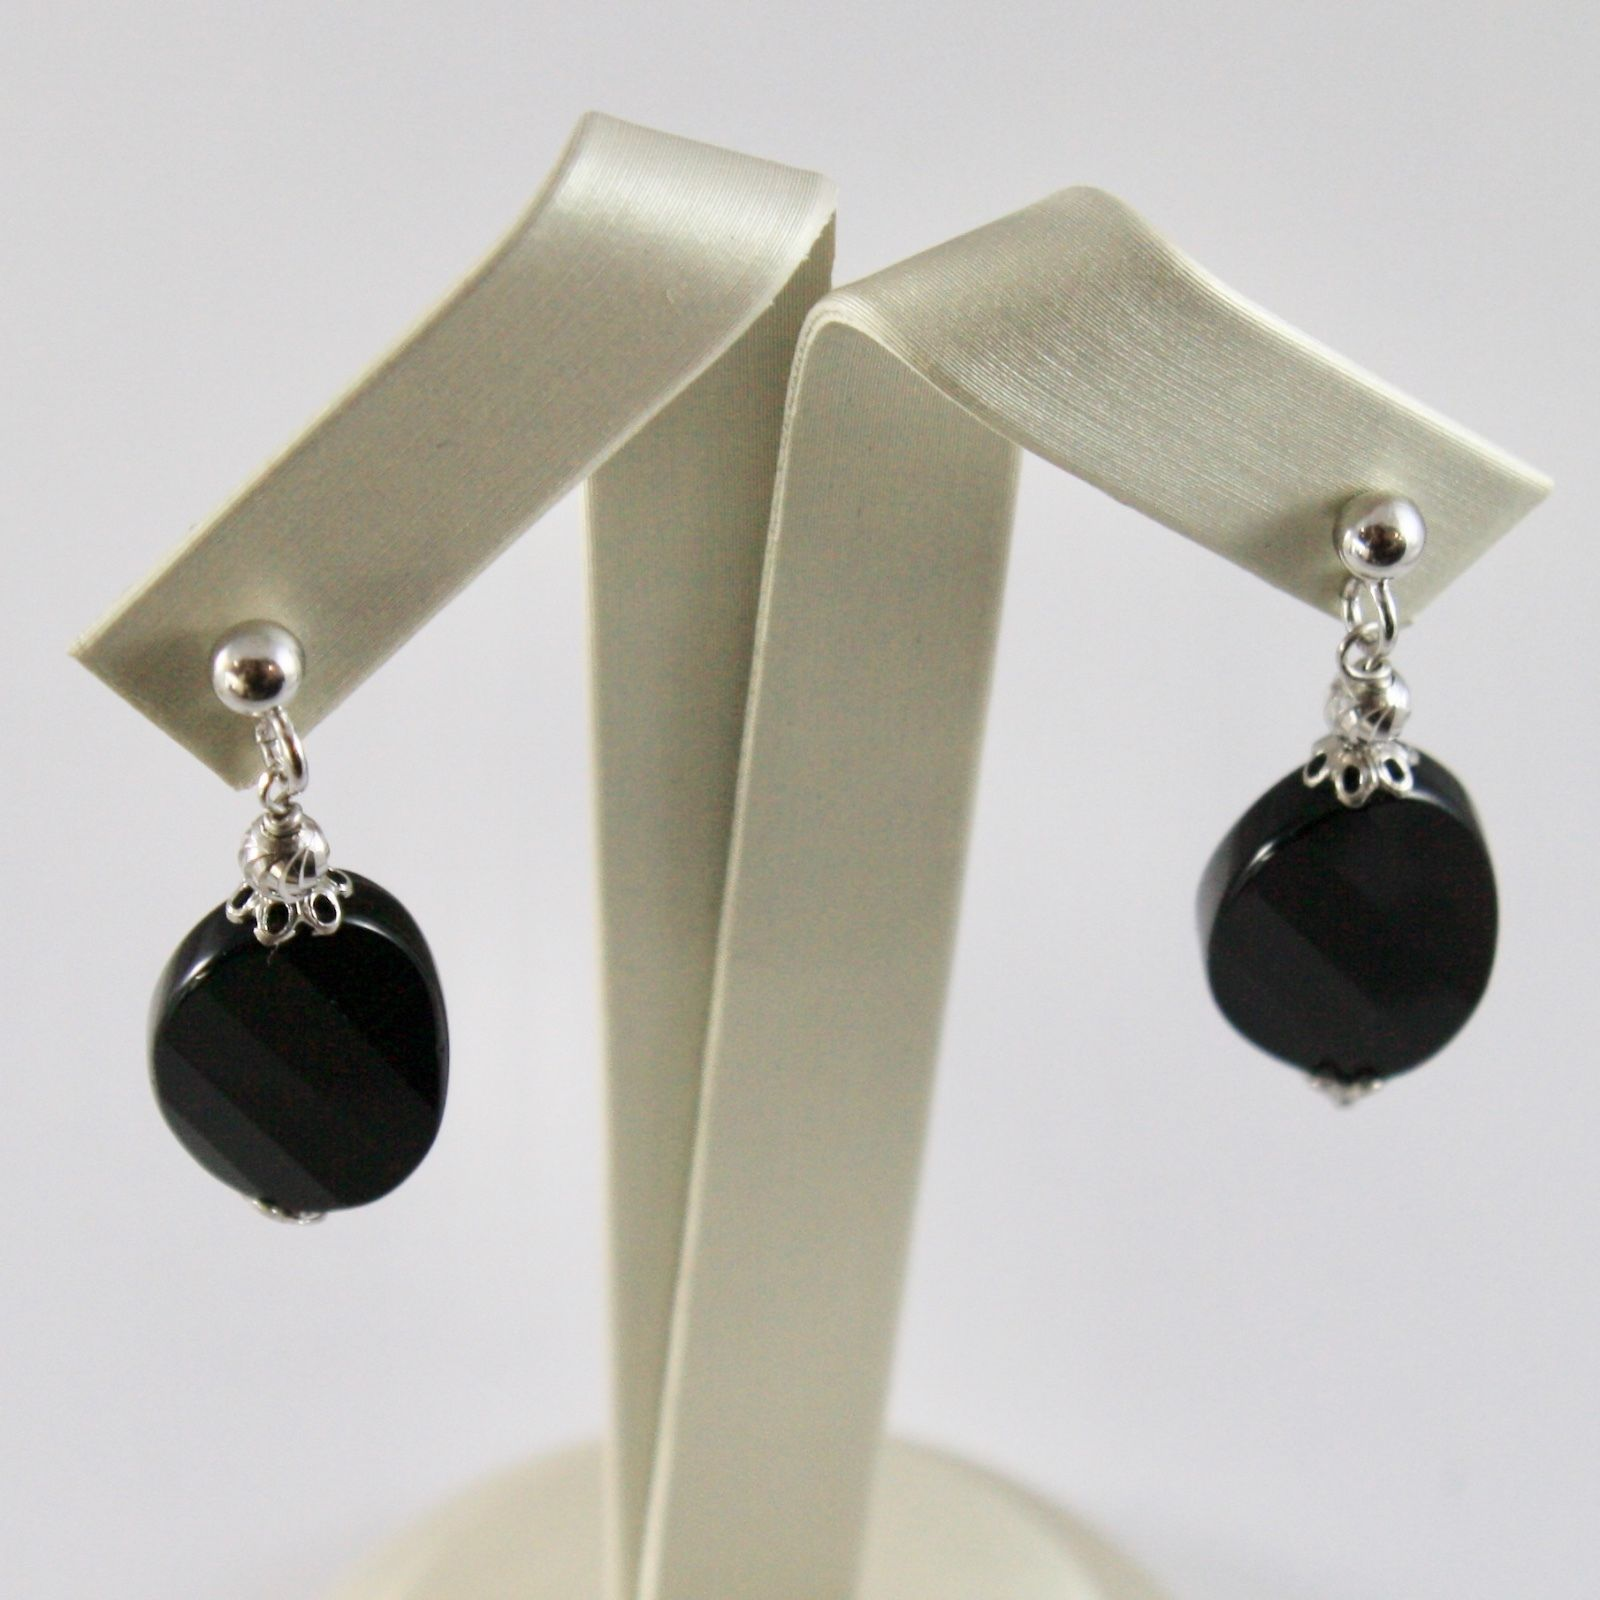 EARRINGS SILVER 925 WITH ONYX OVAL FACETED AND BALLS FACETED